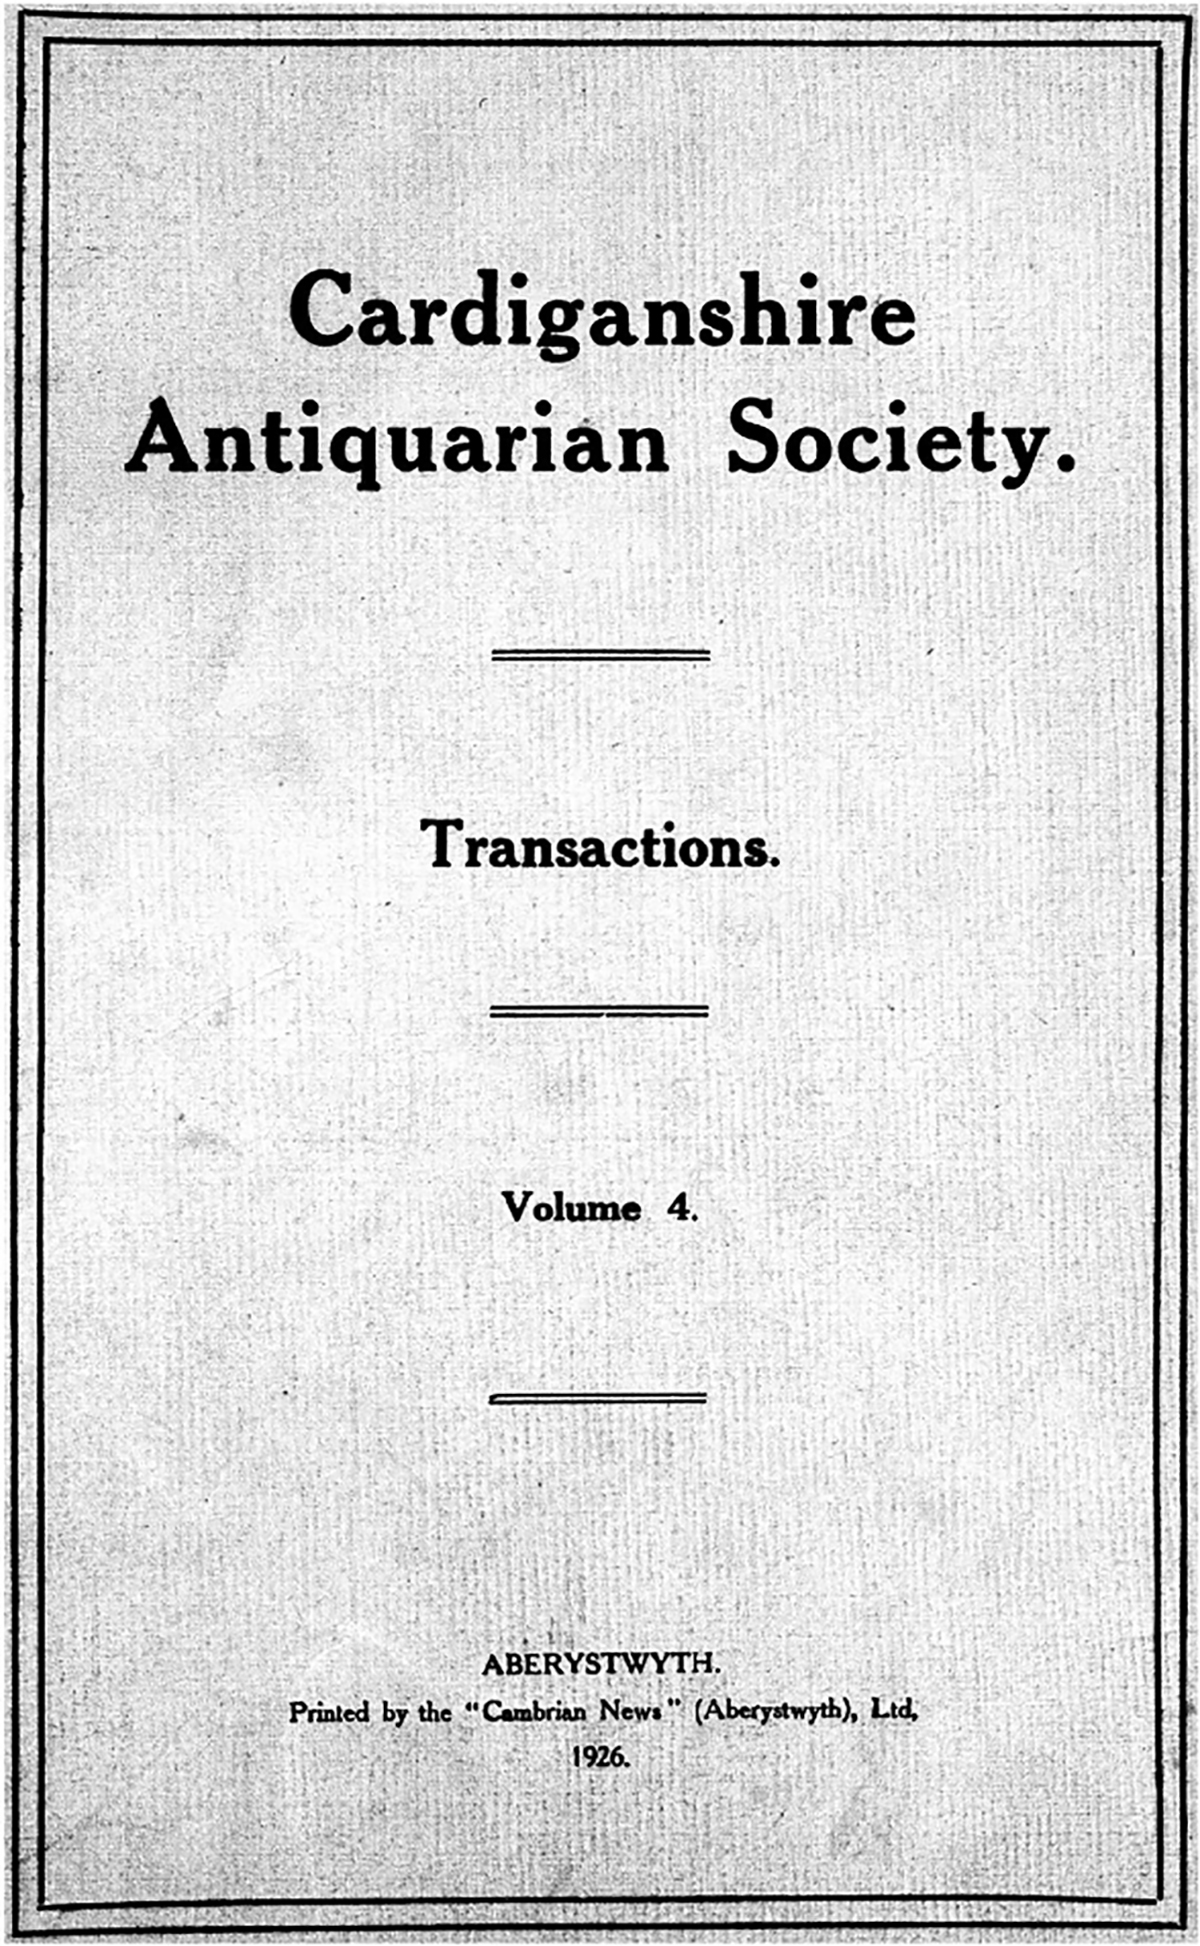 Transactions of the Cardiganshire Antiquarian Society and archaeological Record - Volume 4